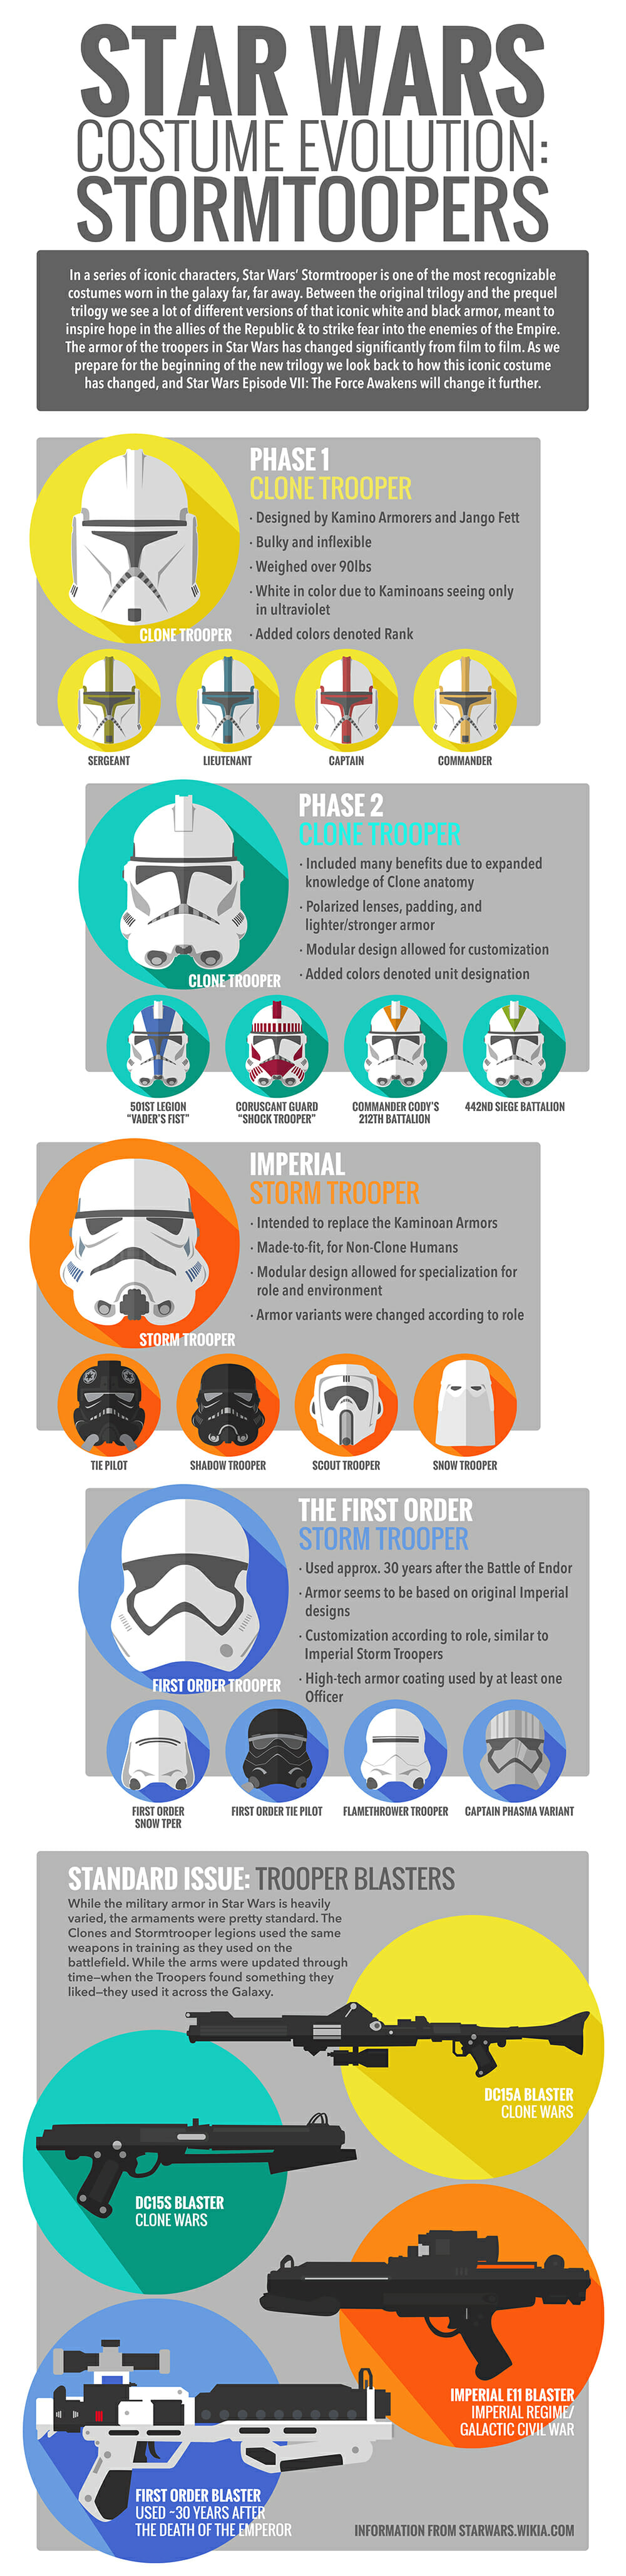 Stormtrooper-Evolution-Infographic